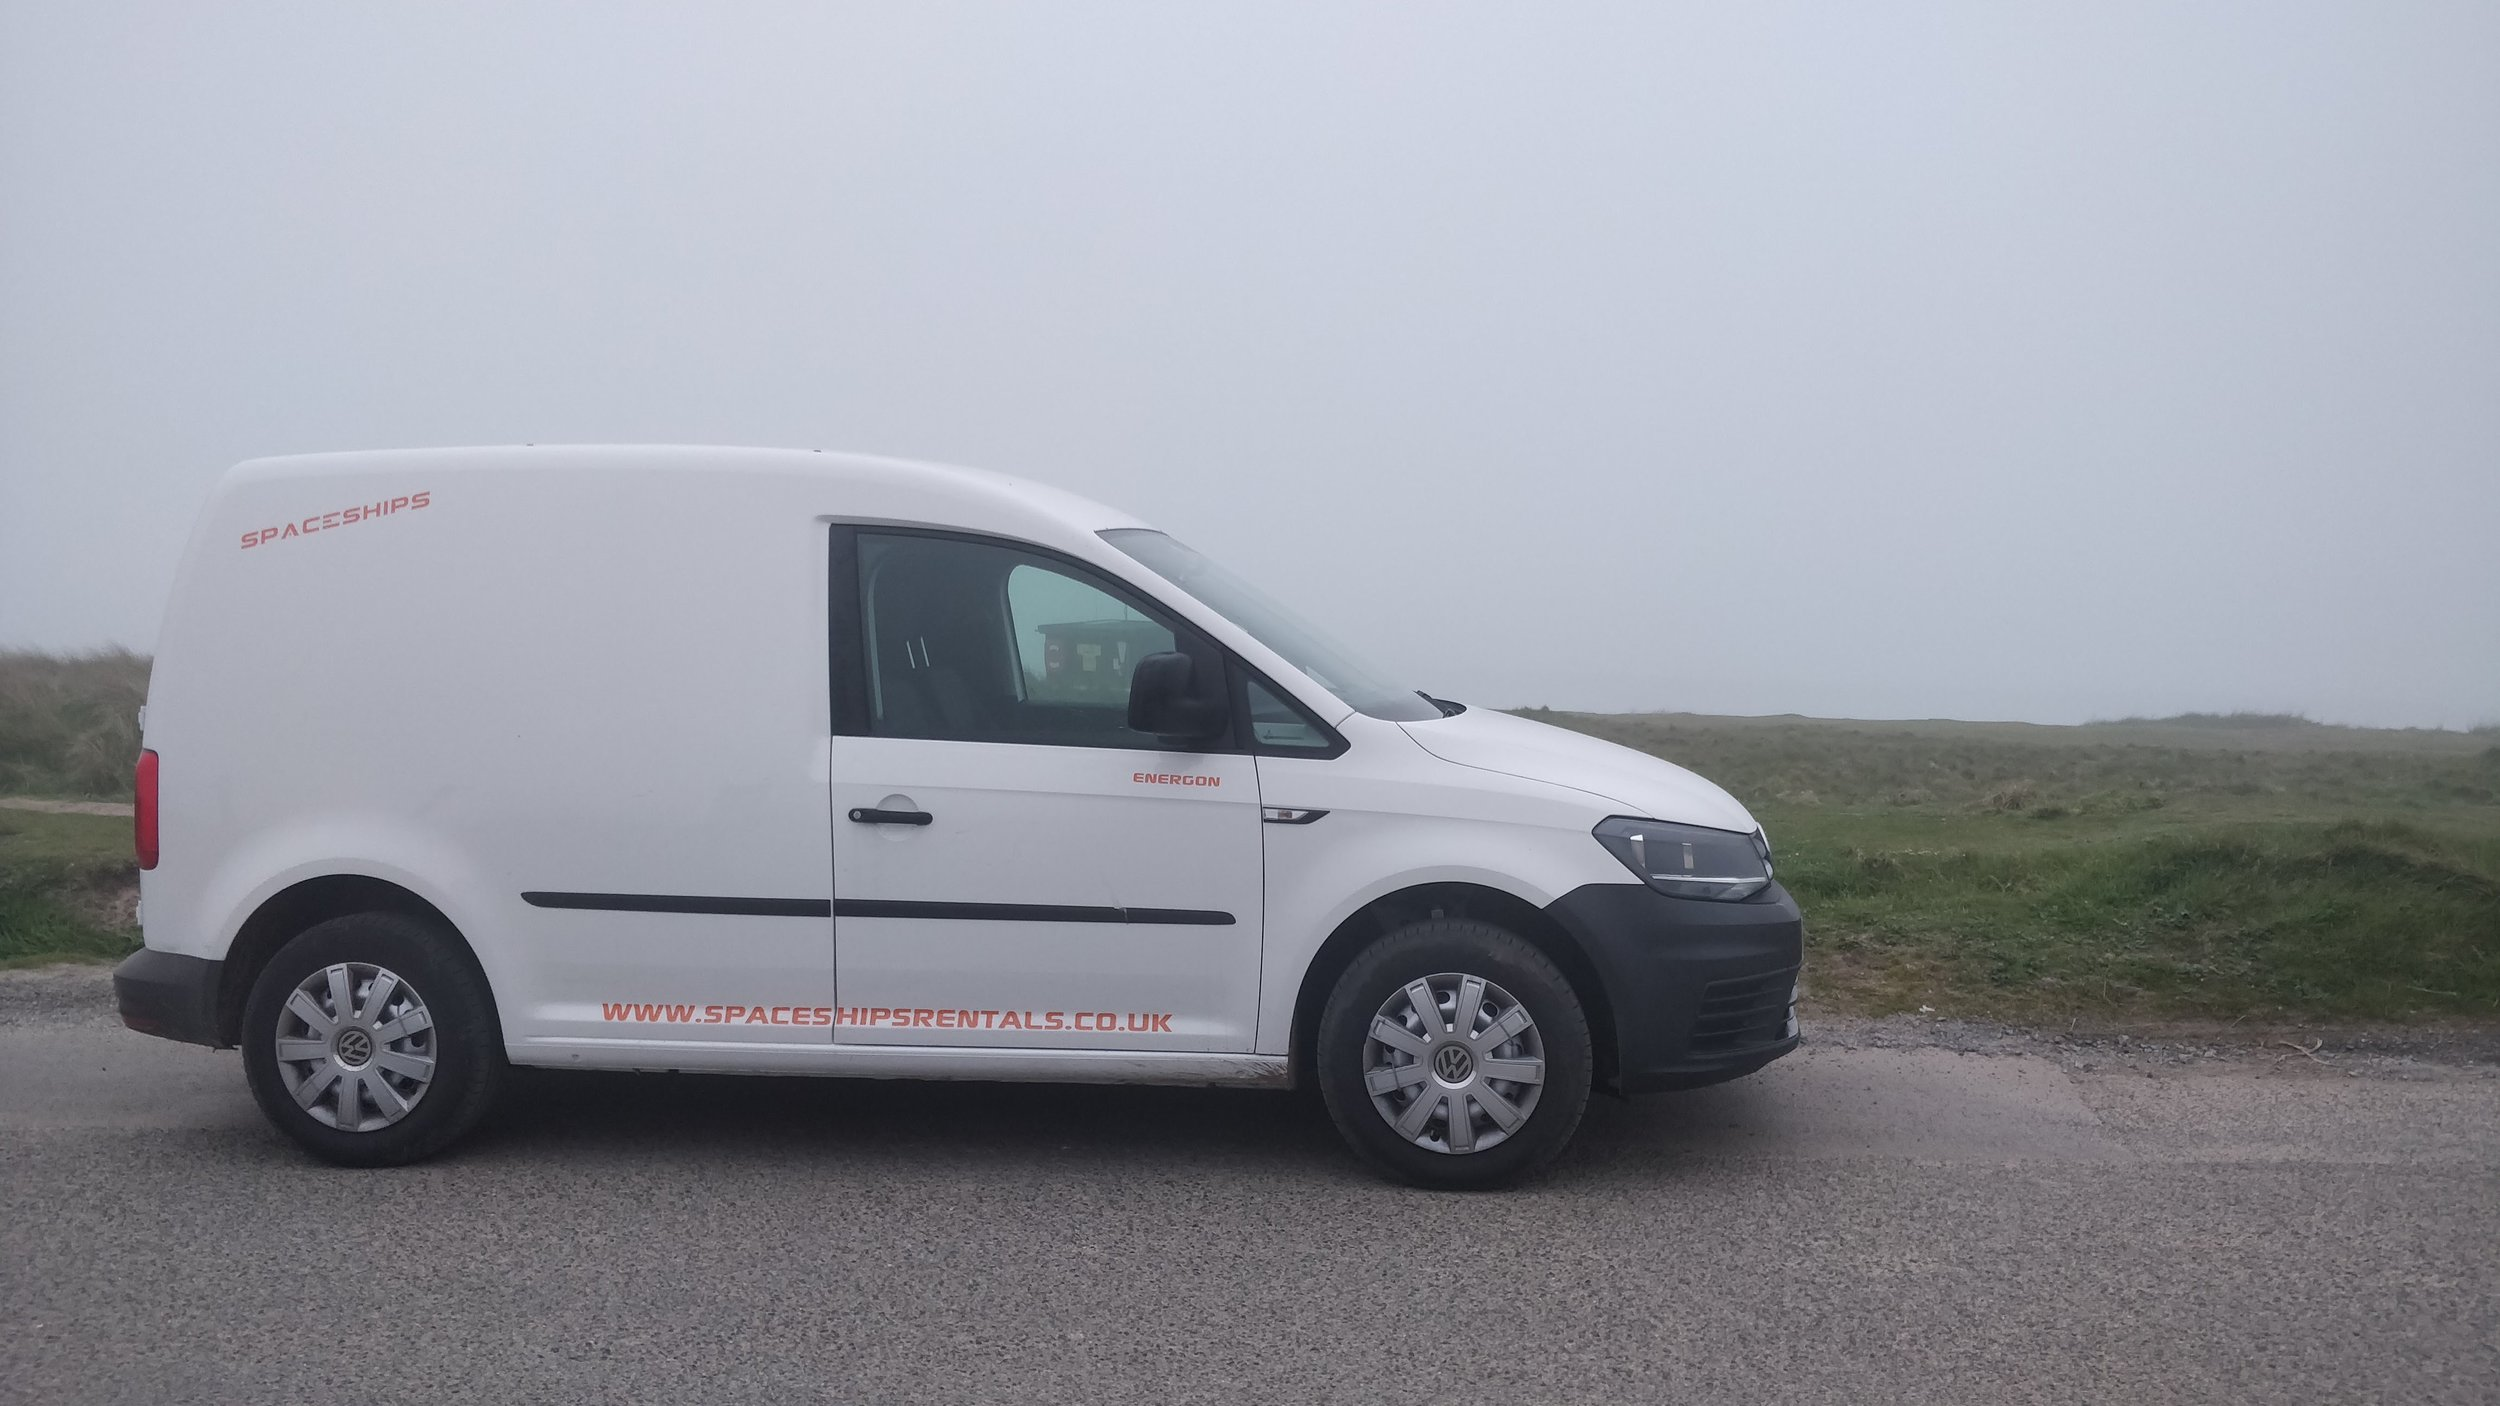 Spaceships Campervan Hire UK & Europe -  https://www.spaceshipsrentals.co.uk/